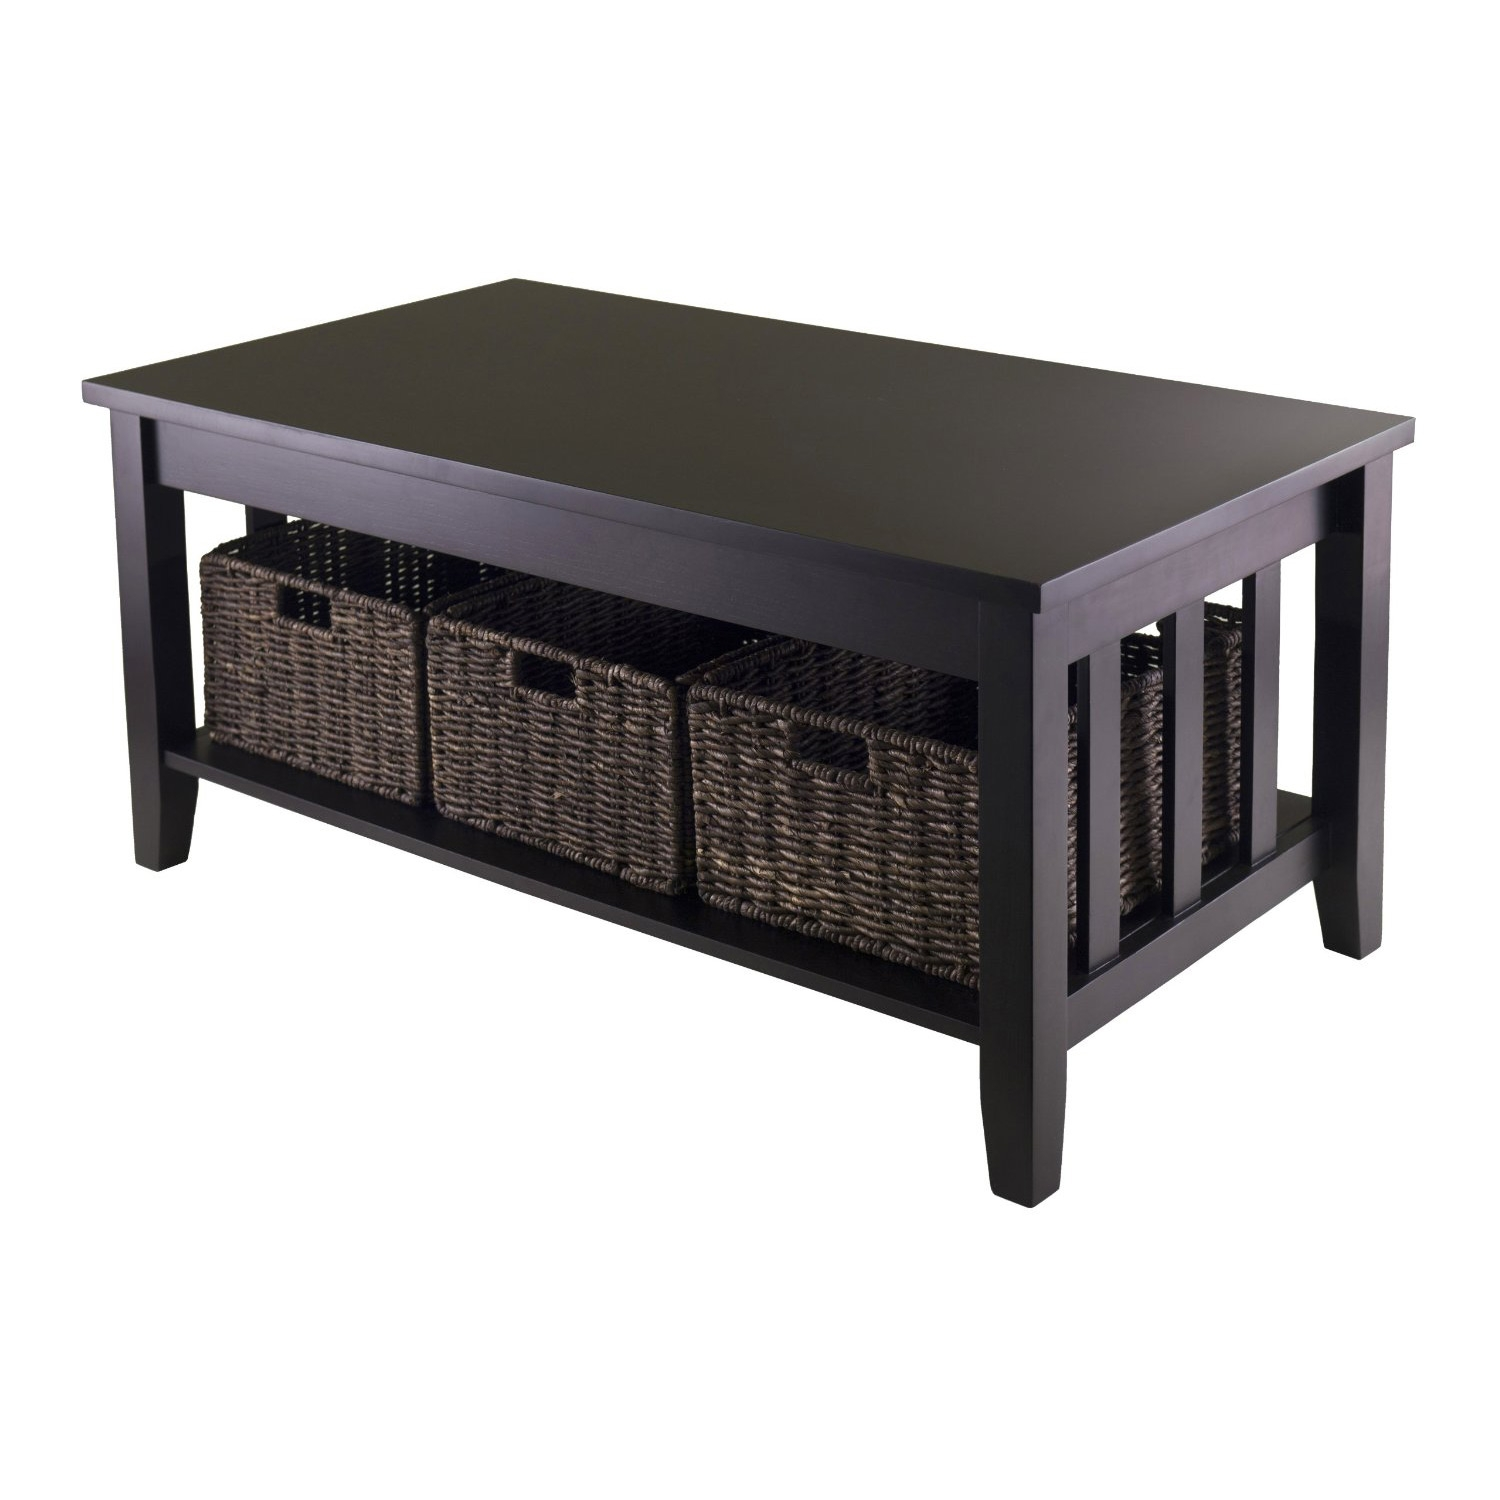 Mission Style Dark Wood Coffee Table with 3-Folding Storage Baskets